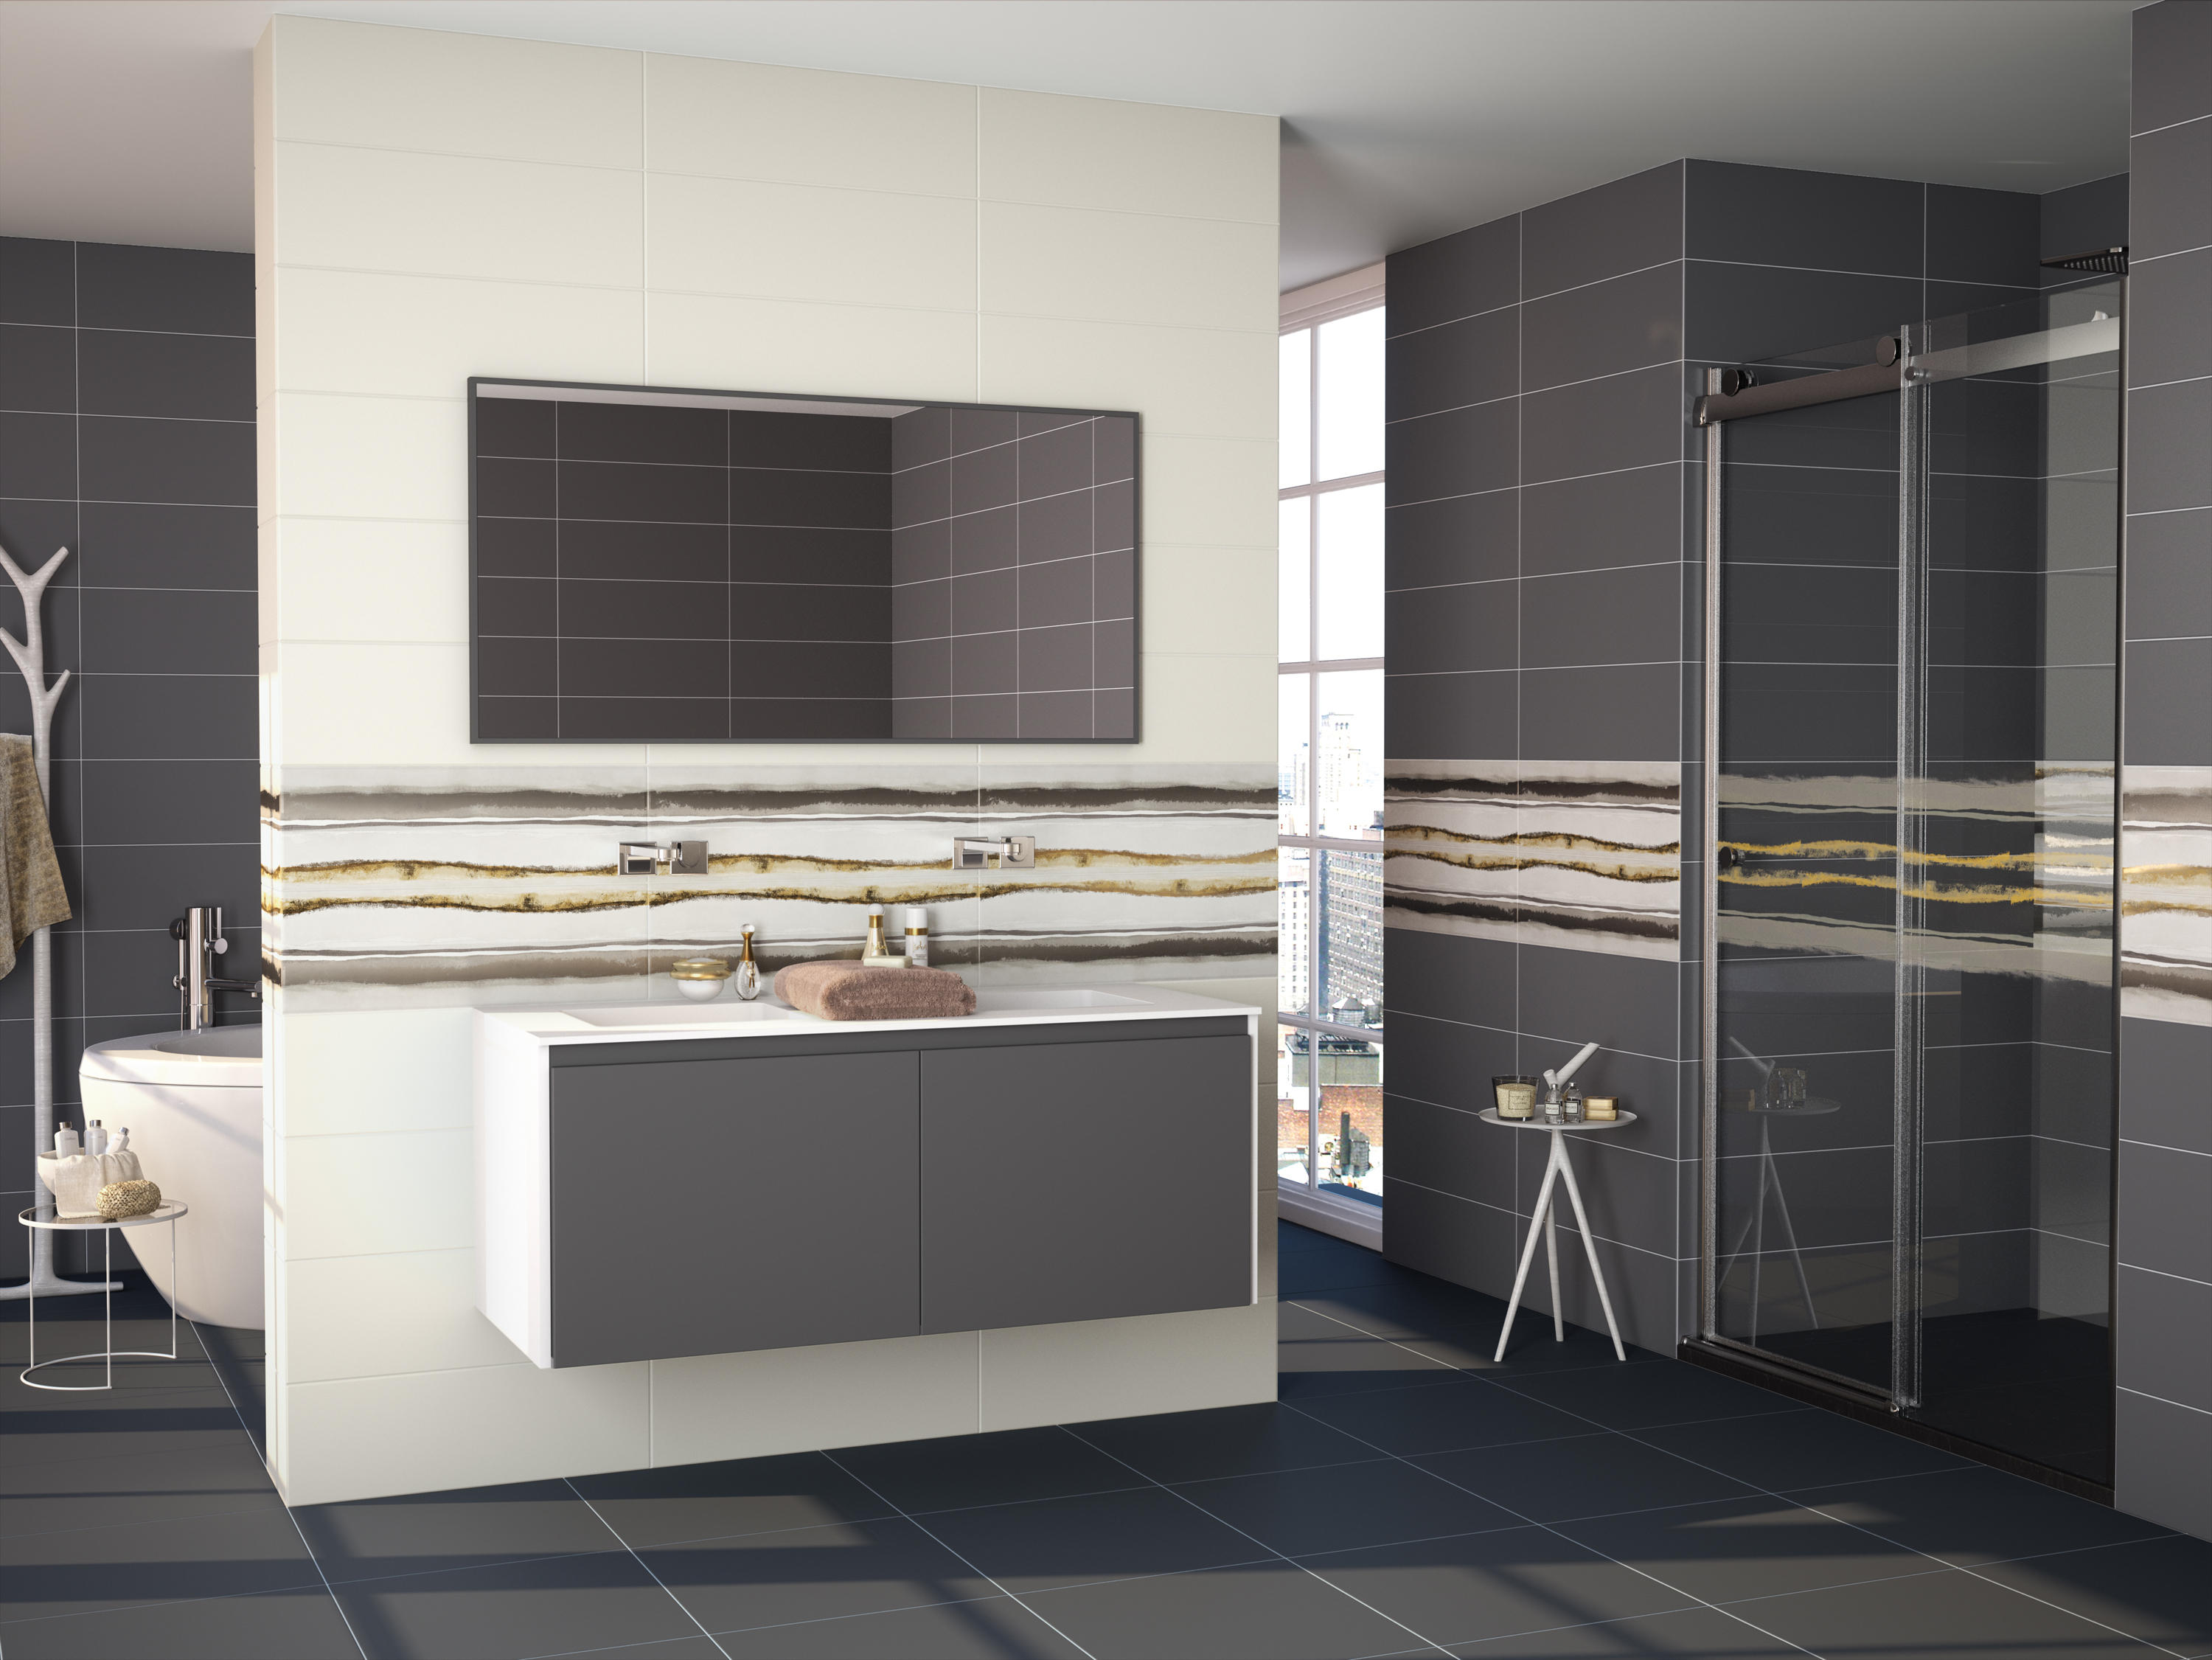 HOME SNOW 60 - Ceramic tiles from APE Grupo   Architonic